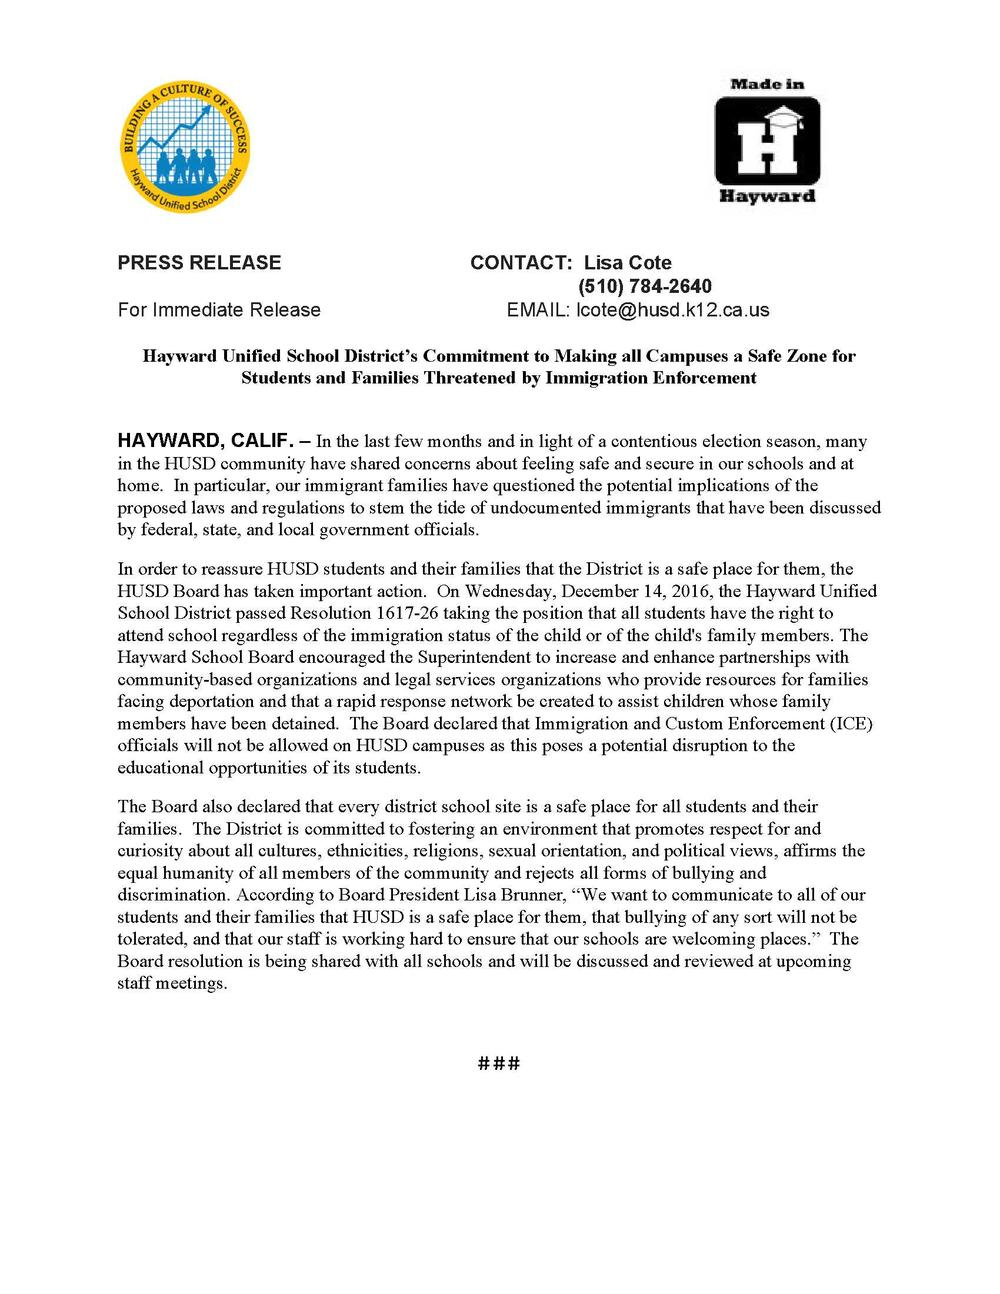 Sanctuary Schools press release